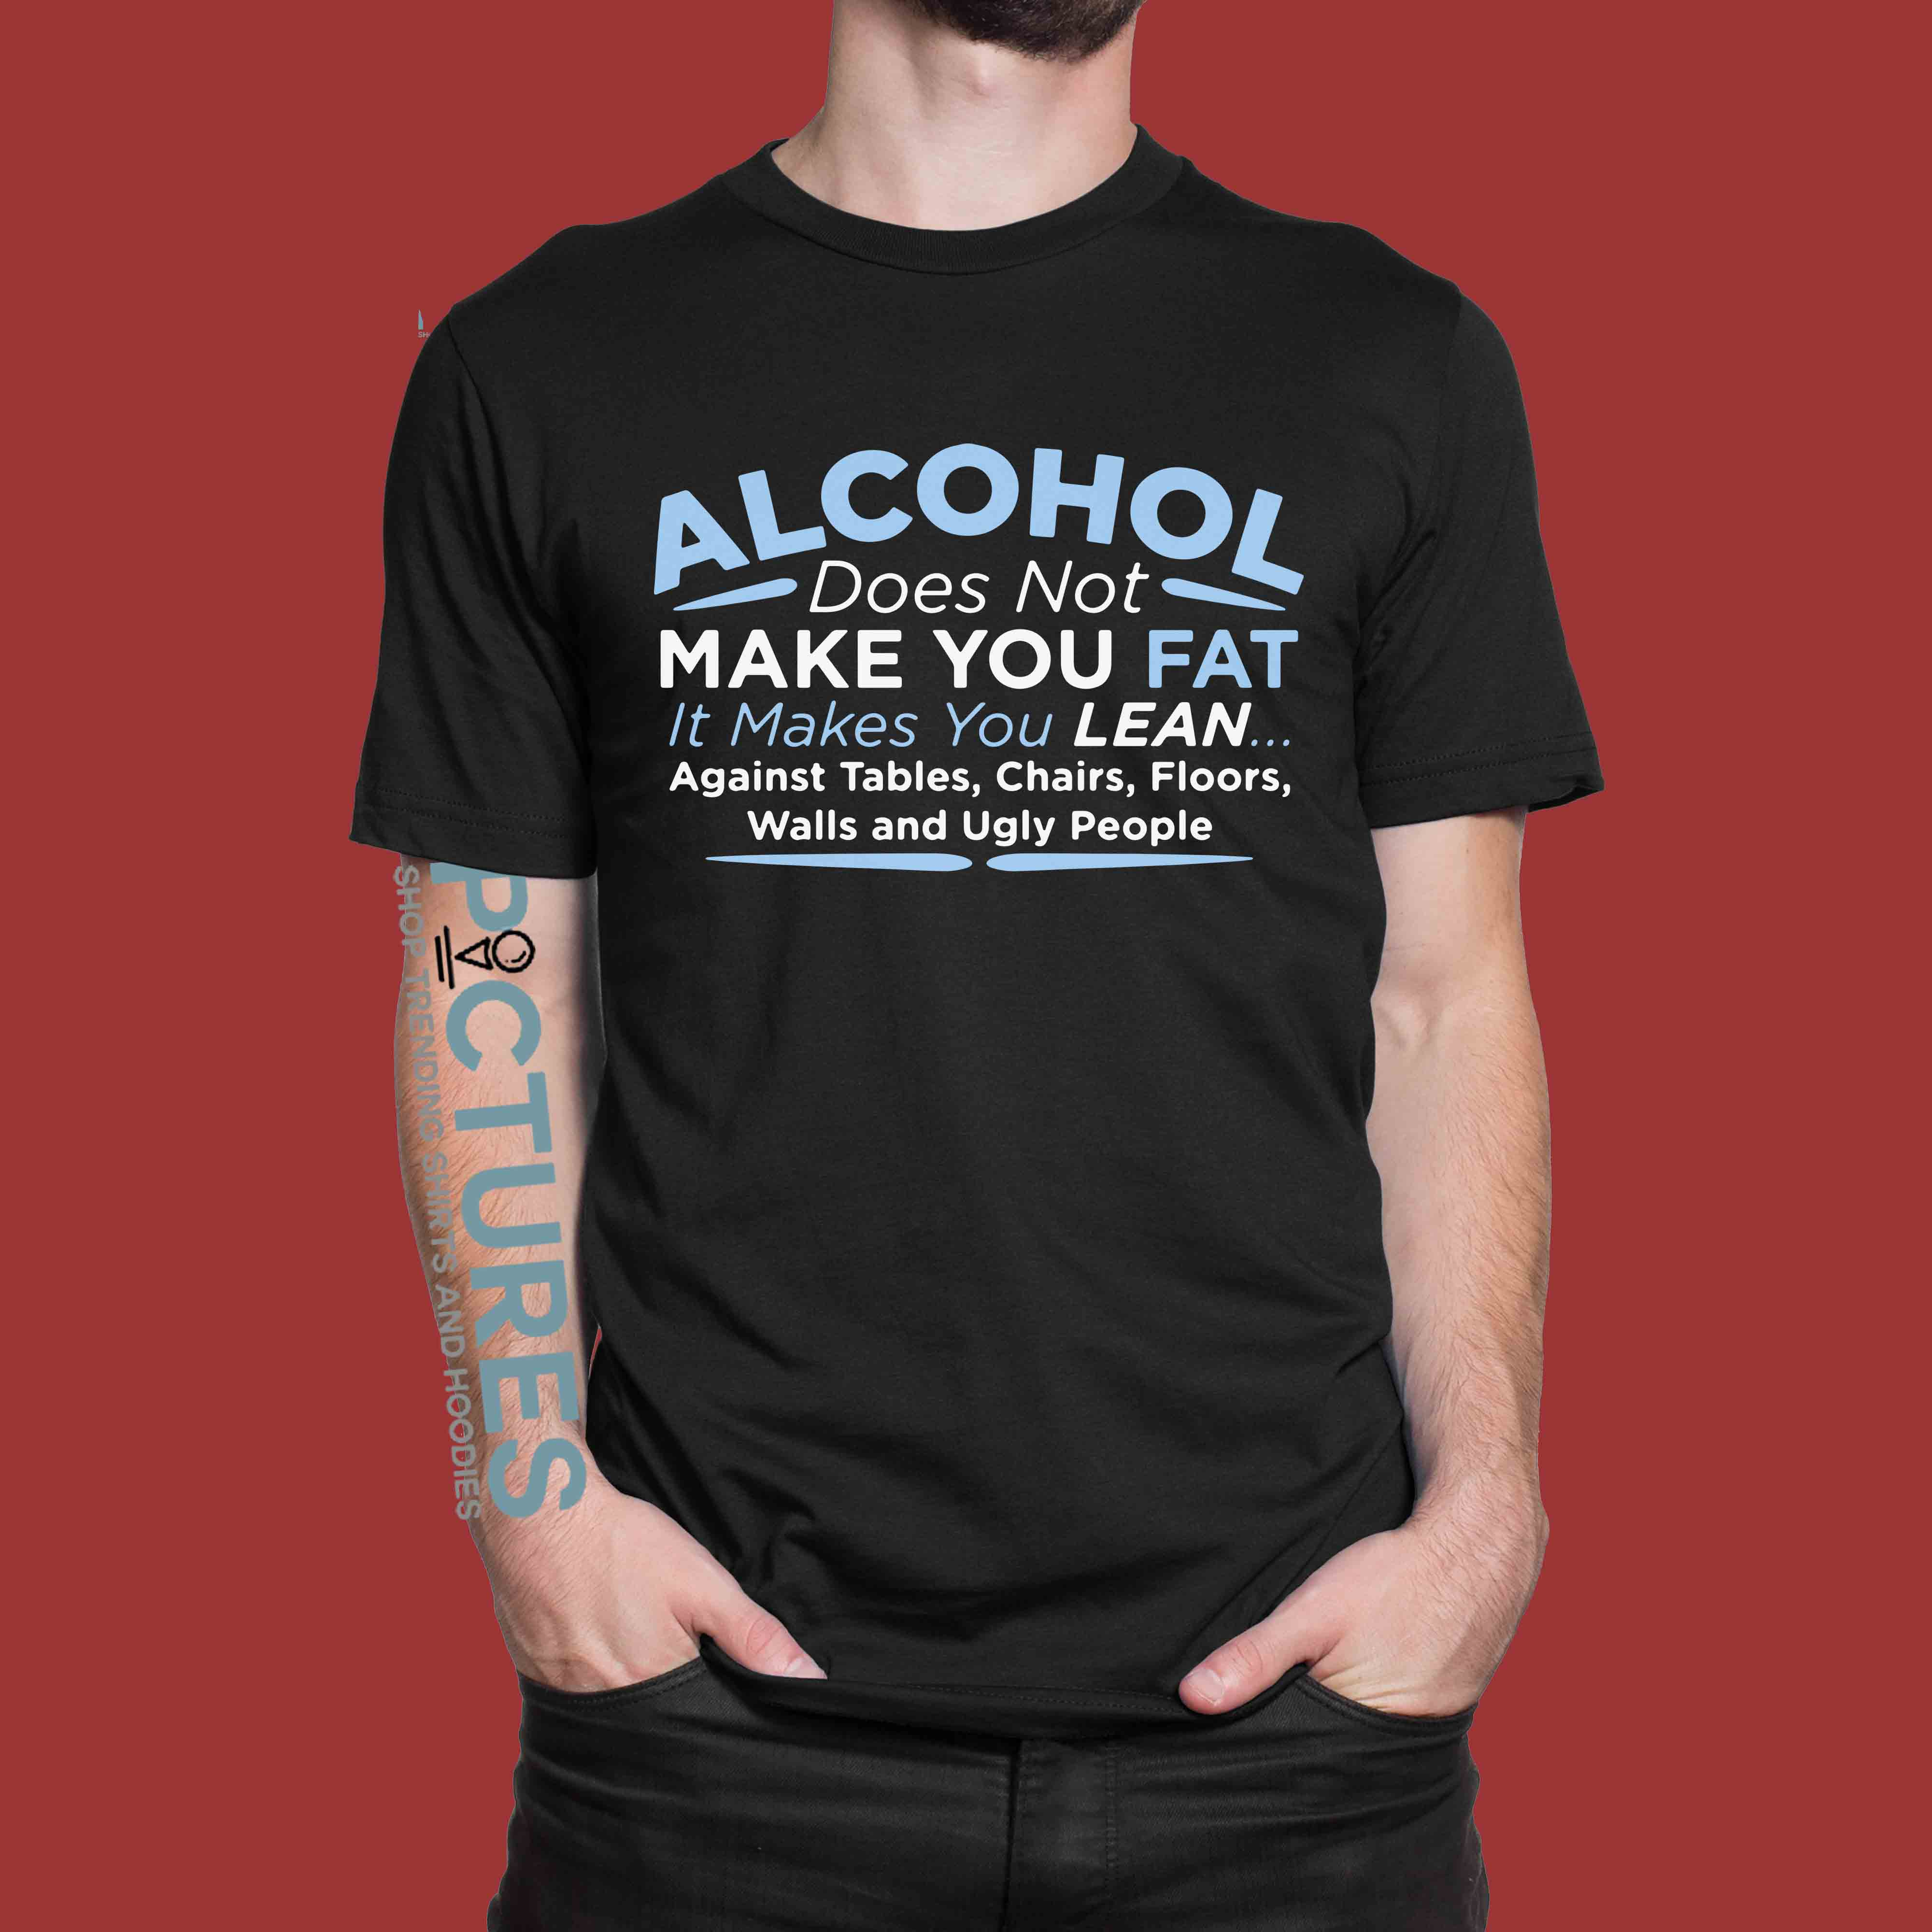 Alcohol Does Not Make You Fat shirt